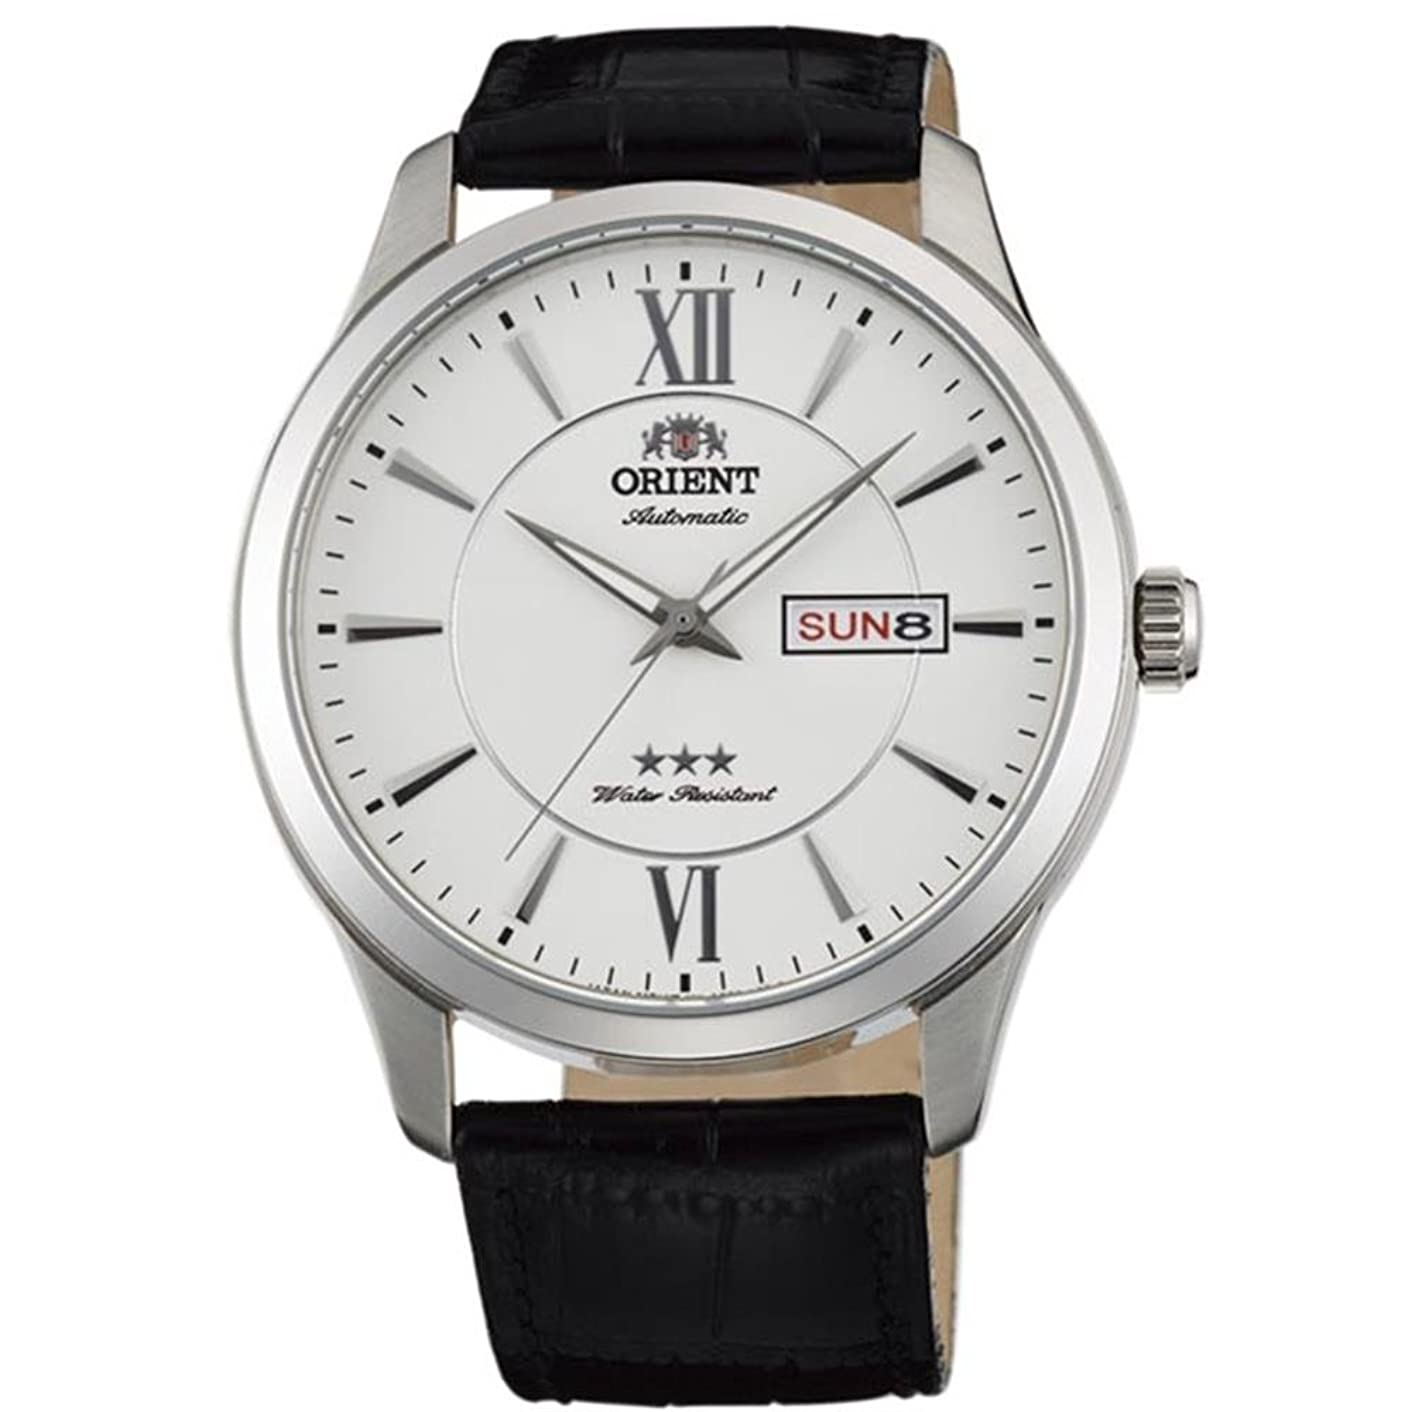 Orient Men's 43mm Black Leather Band Steel Case Automatic White Dial Analog Watch FAB0B003W9